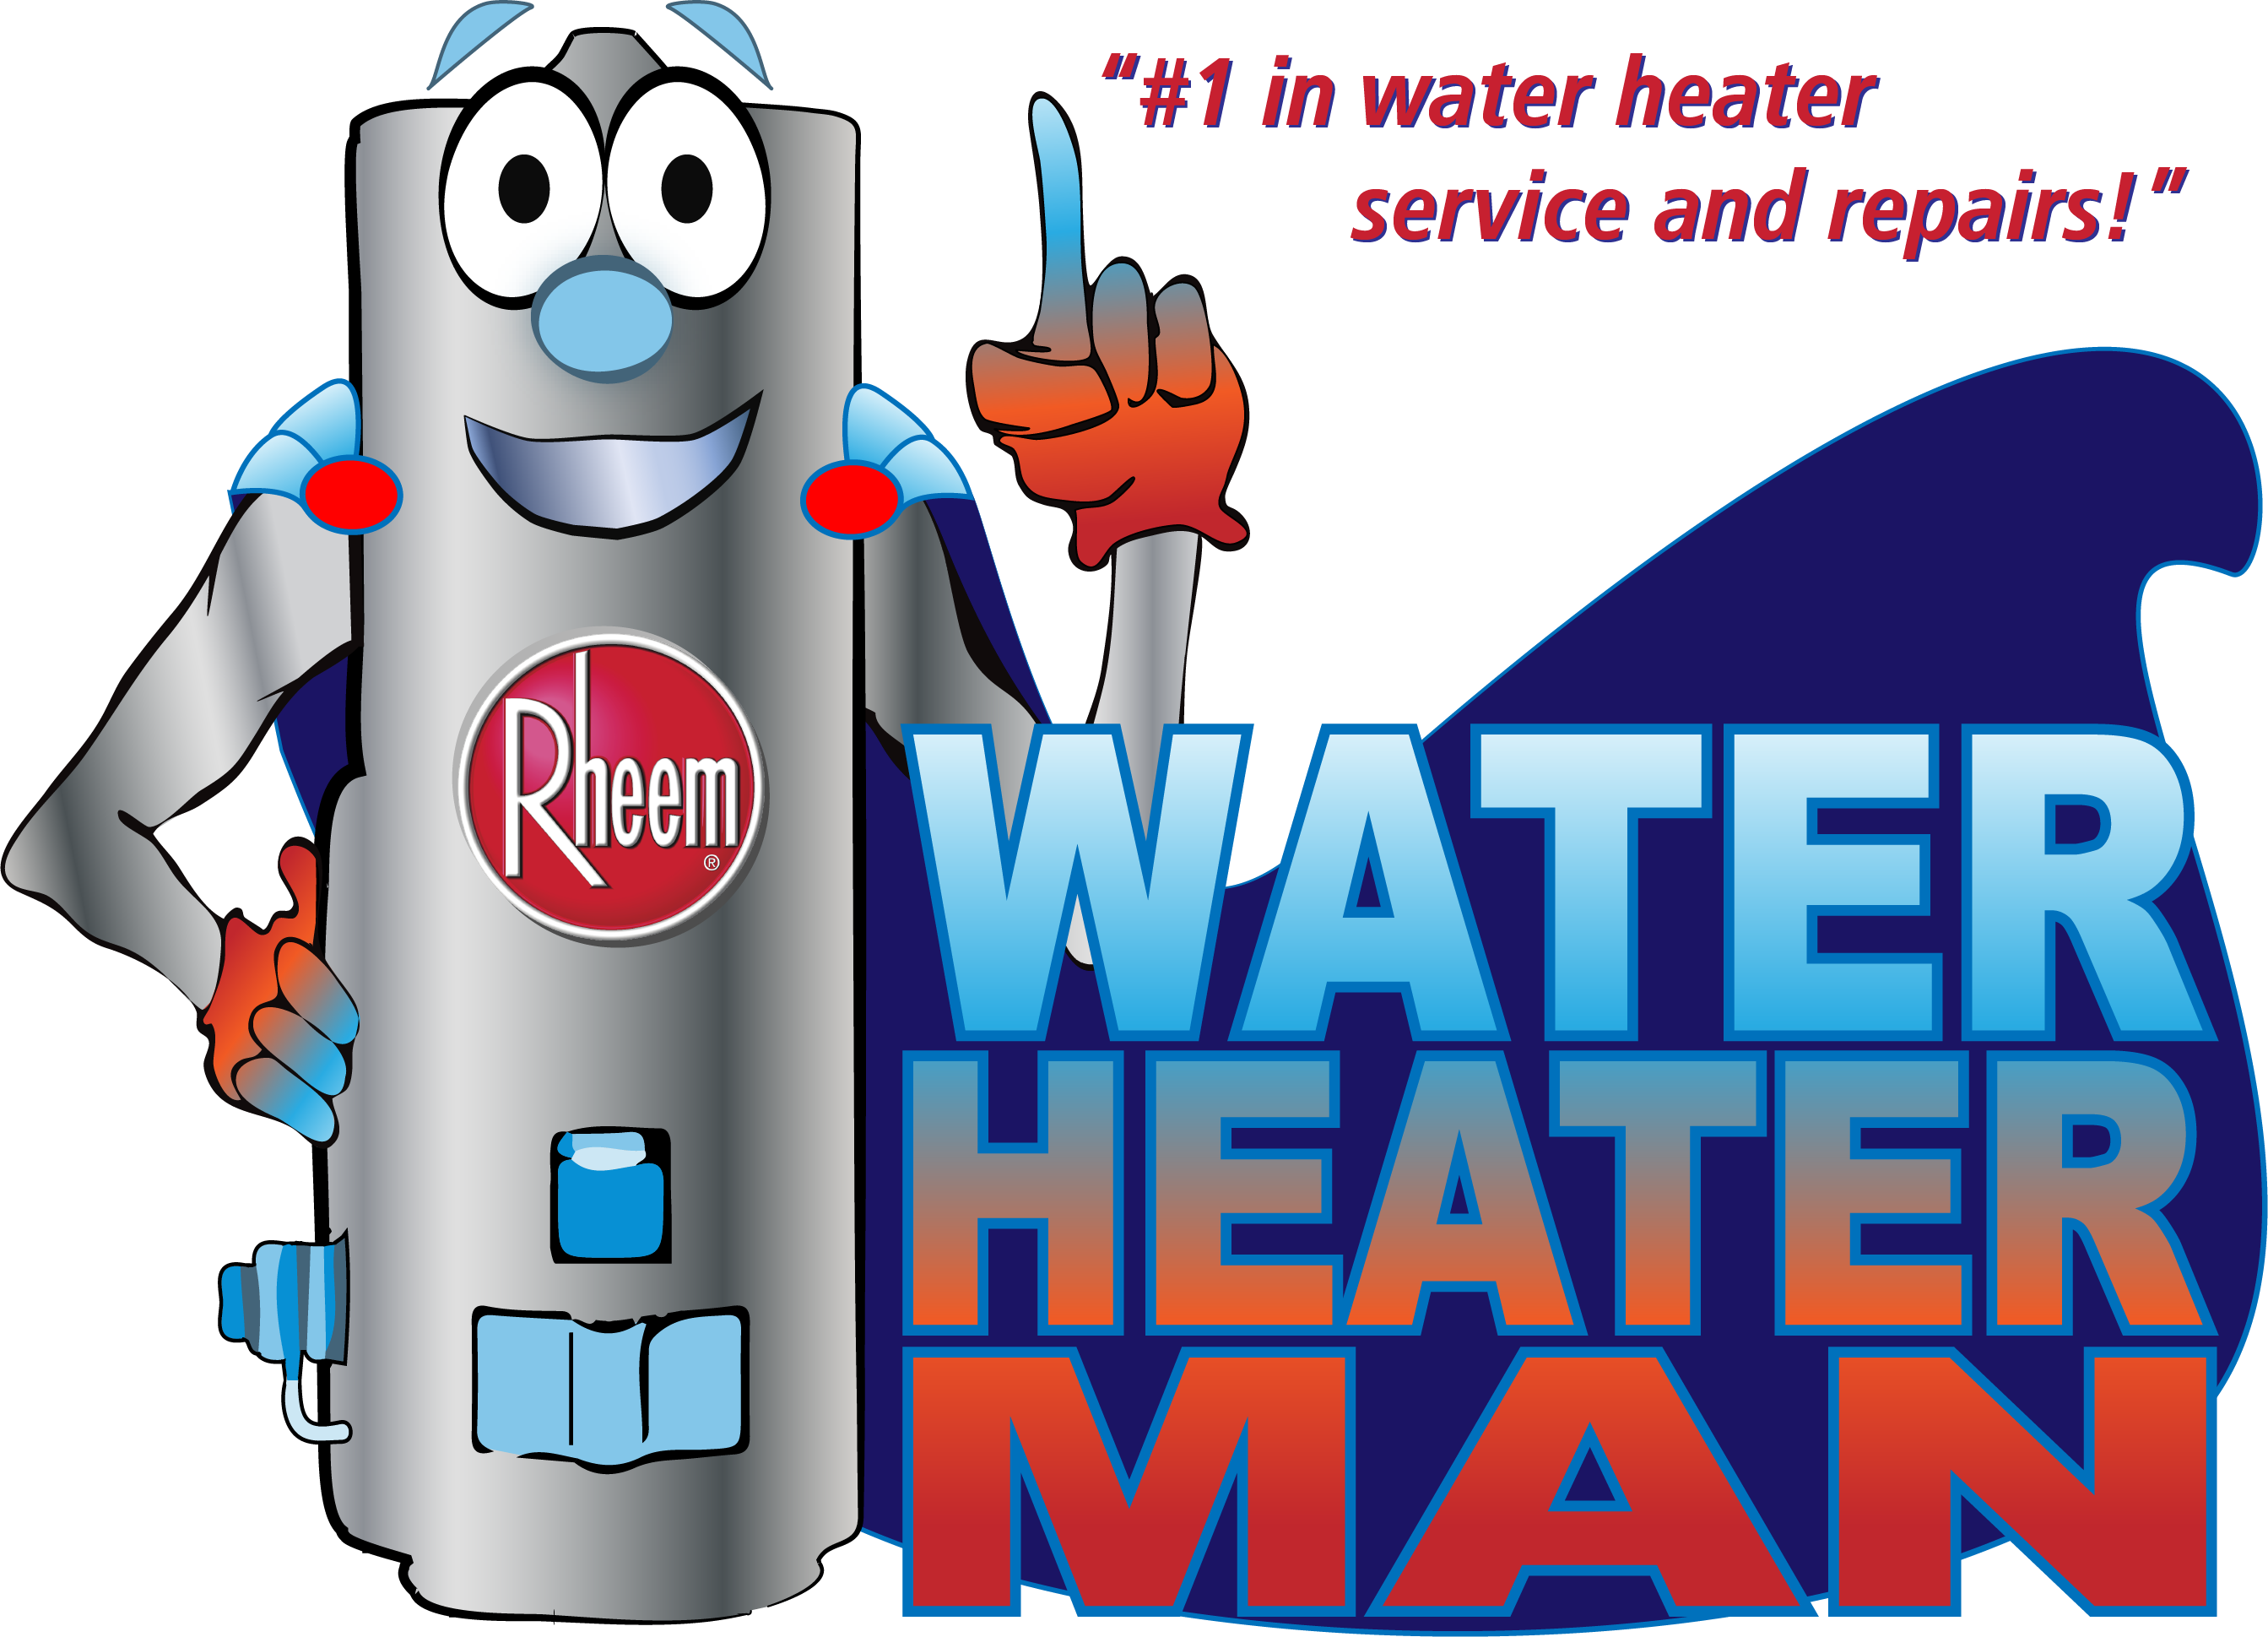 Leading In water-heating services